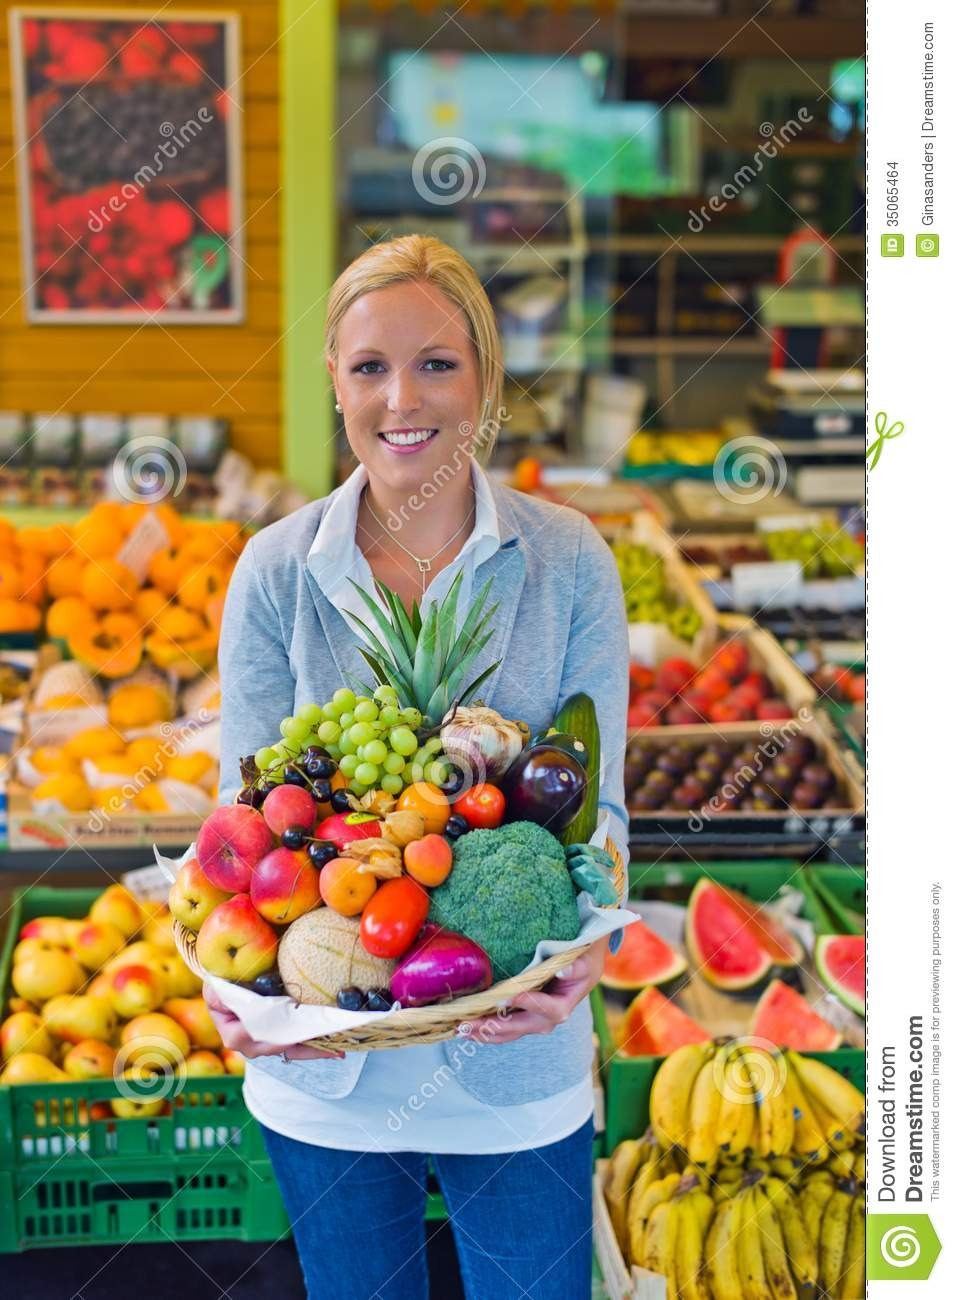 Healthy eating tip 4: Fill up on colorful fruits and vegetables Fruits and vegetables are the foundation of a healthy diet. They are low in calories and nutrient dense, which means they are packed with vitamins, minerals, antioxidants, and fiber.